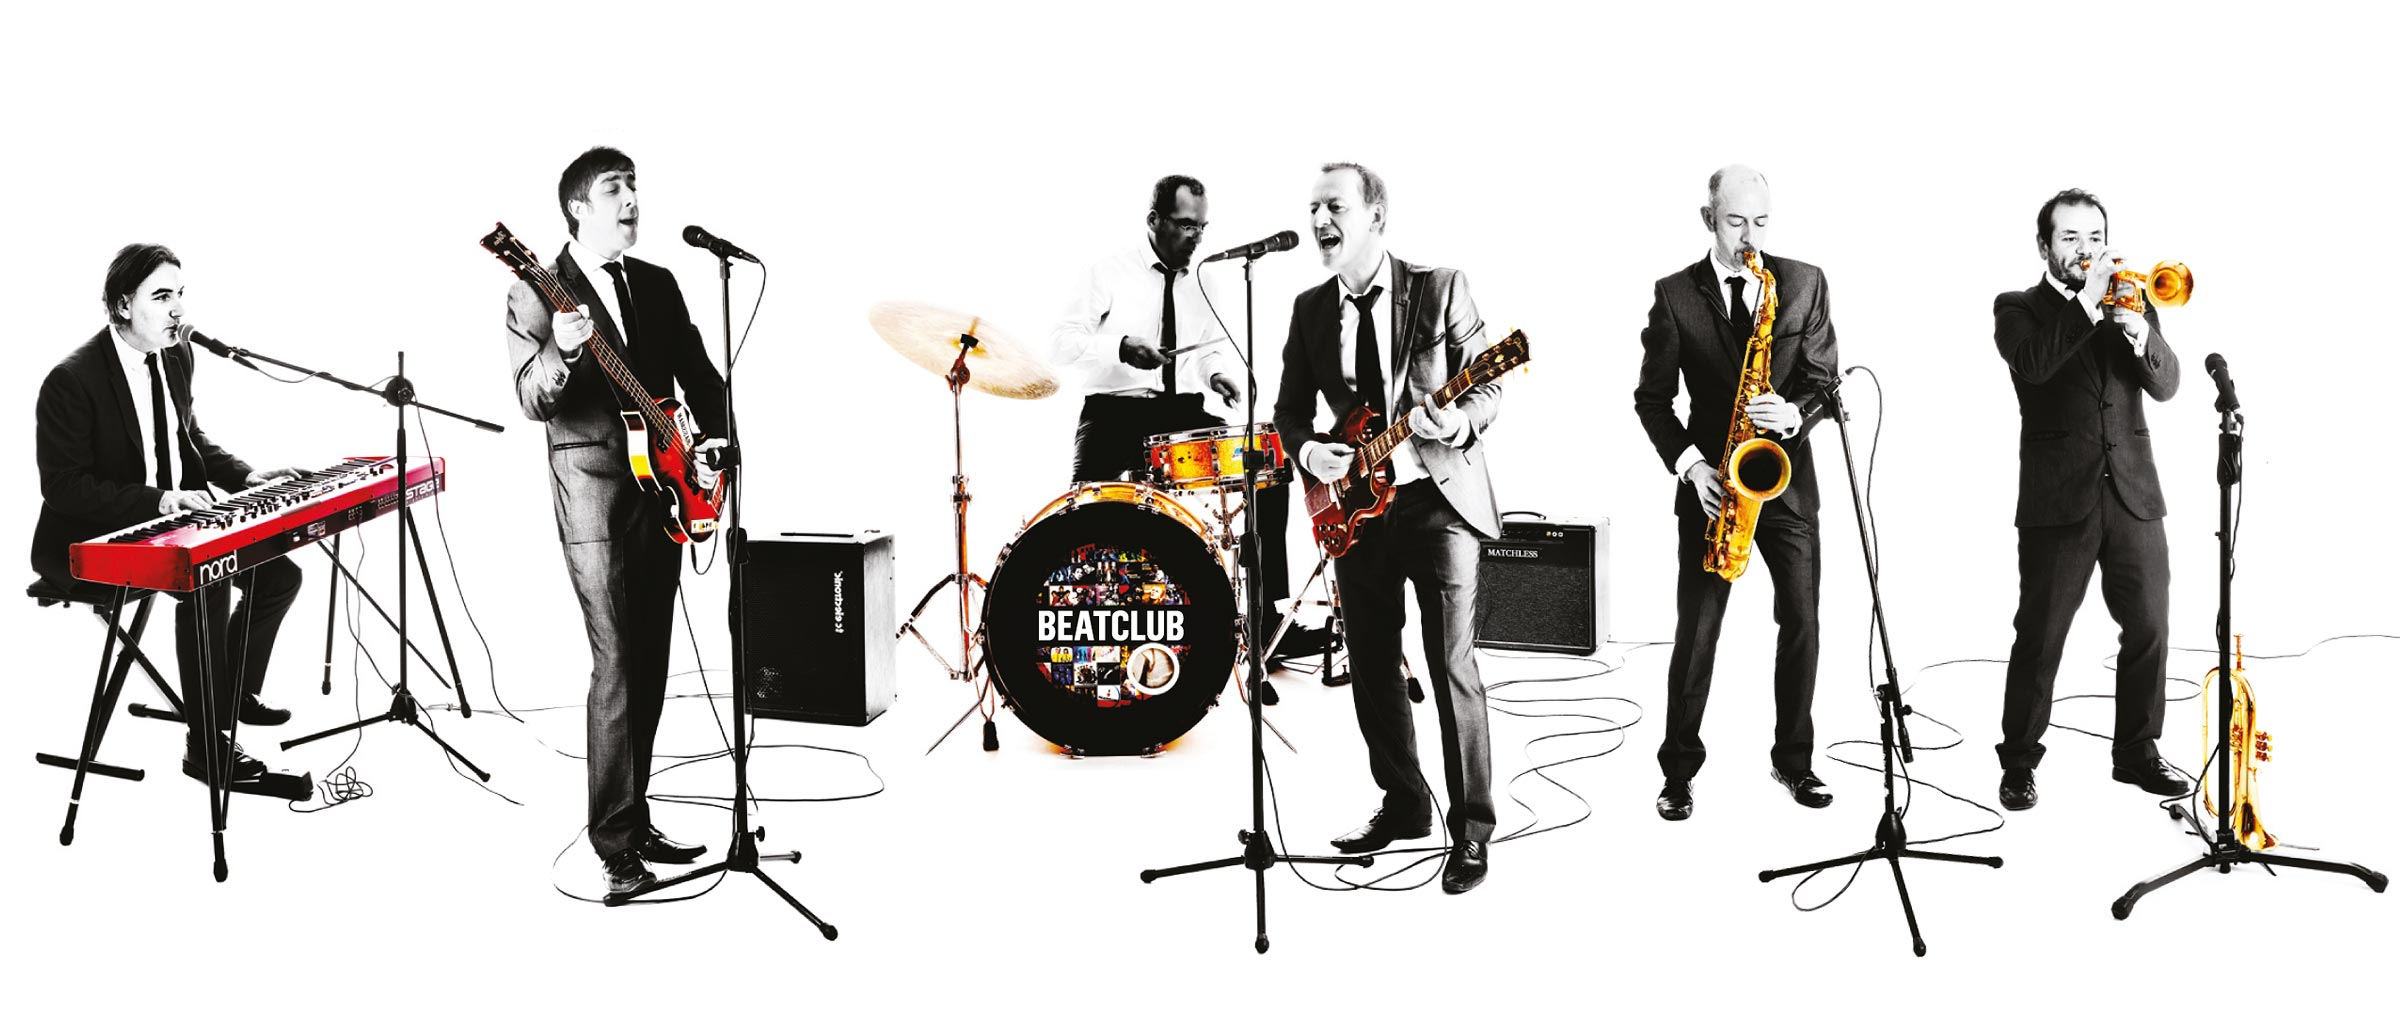 BEATCLUB The Wedding Band for Music Lovers